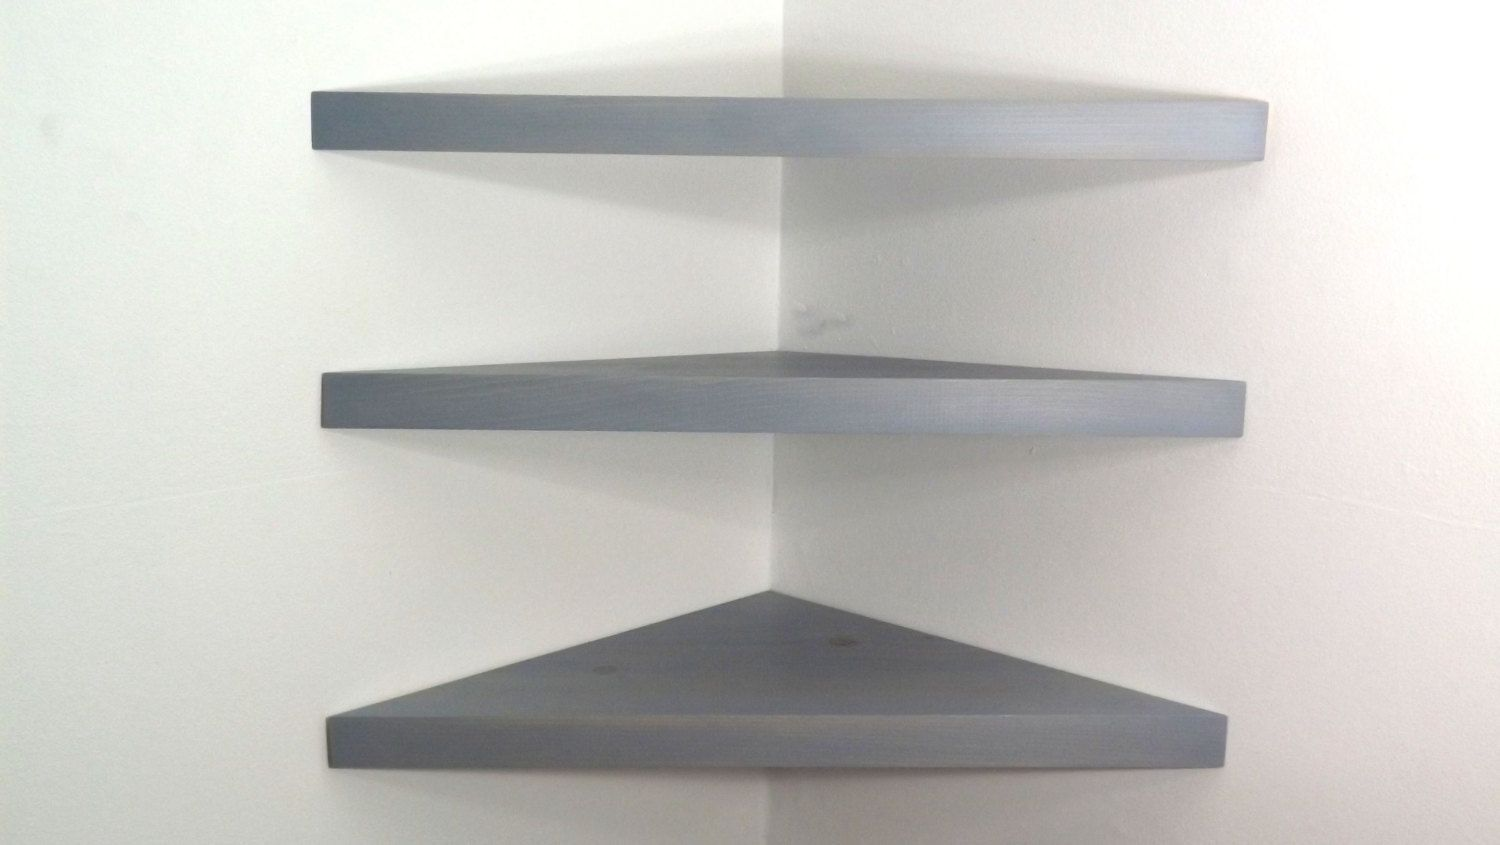 set inch floating corner shelves with pearl grey stain metal shelf handmade the usa bawoodworking etsy prepac bookshelf narrow wall lip small bedroom storage computer cupboard diy